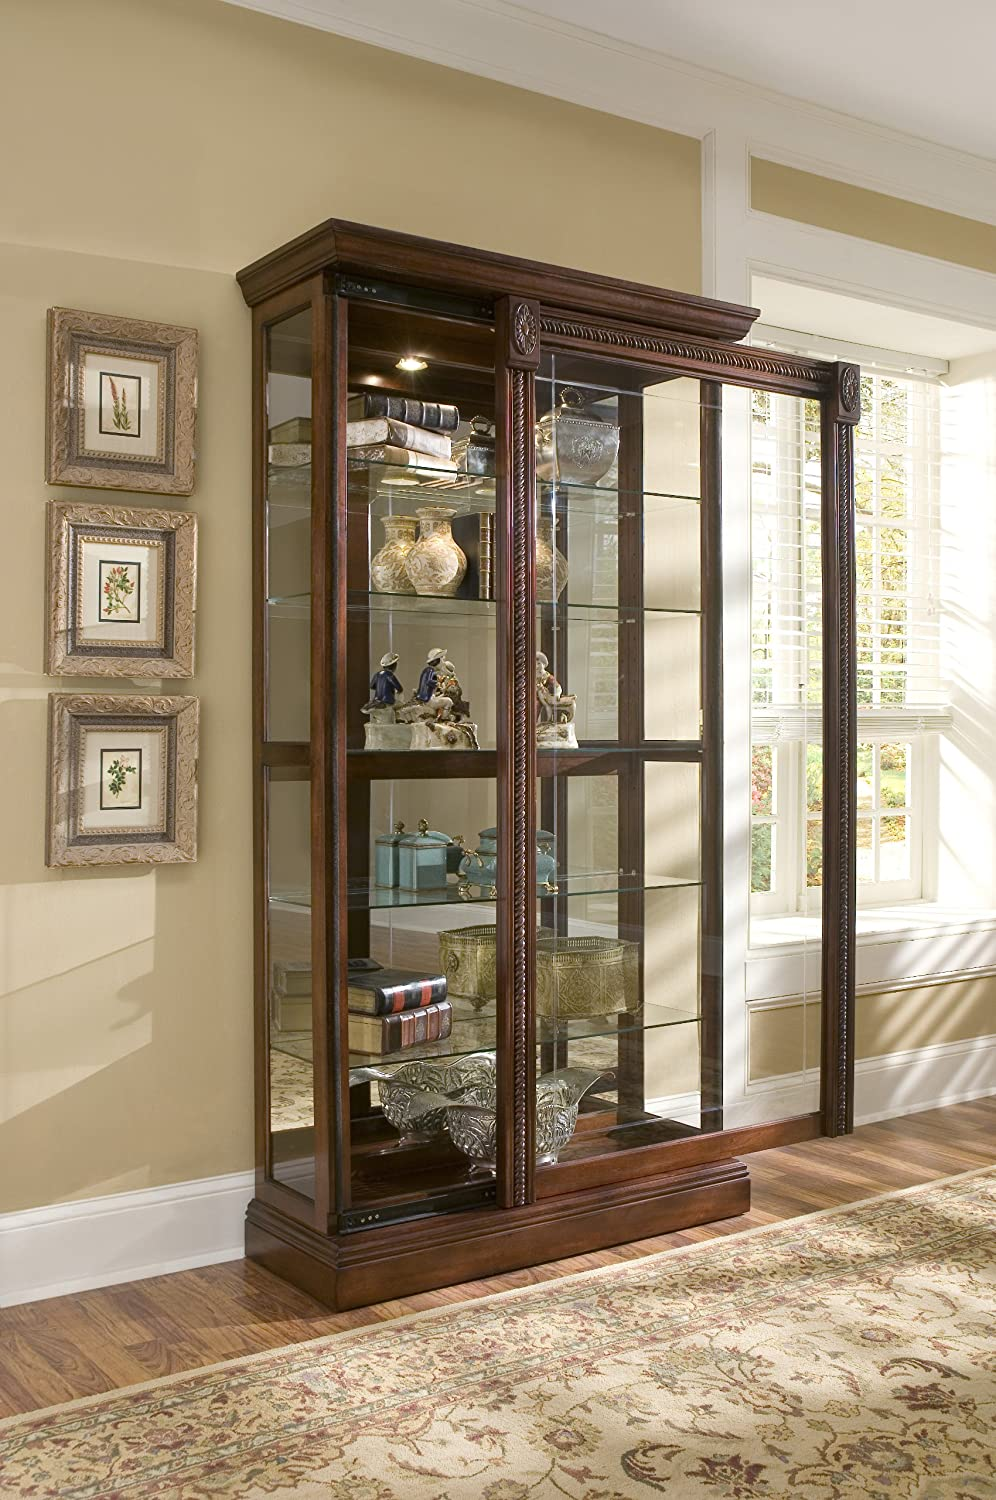 Amazon.com Pulaski Two Way Sliding Door Curio 43 by 17 by 80-Inch Medallion Cherry Finish Brown Kitchen u0026 Dining & Amazon.com: Pulaski Two Way Sliding Door Curio 43 by 17 by 80-Inch ...